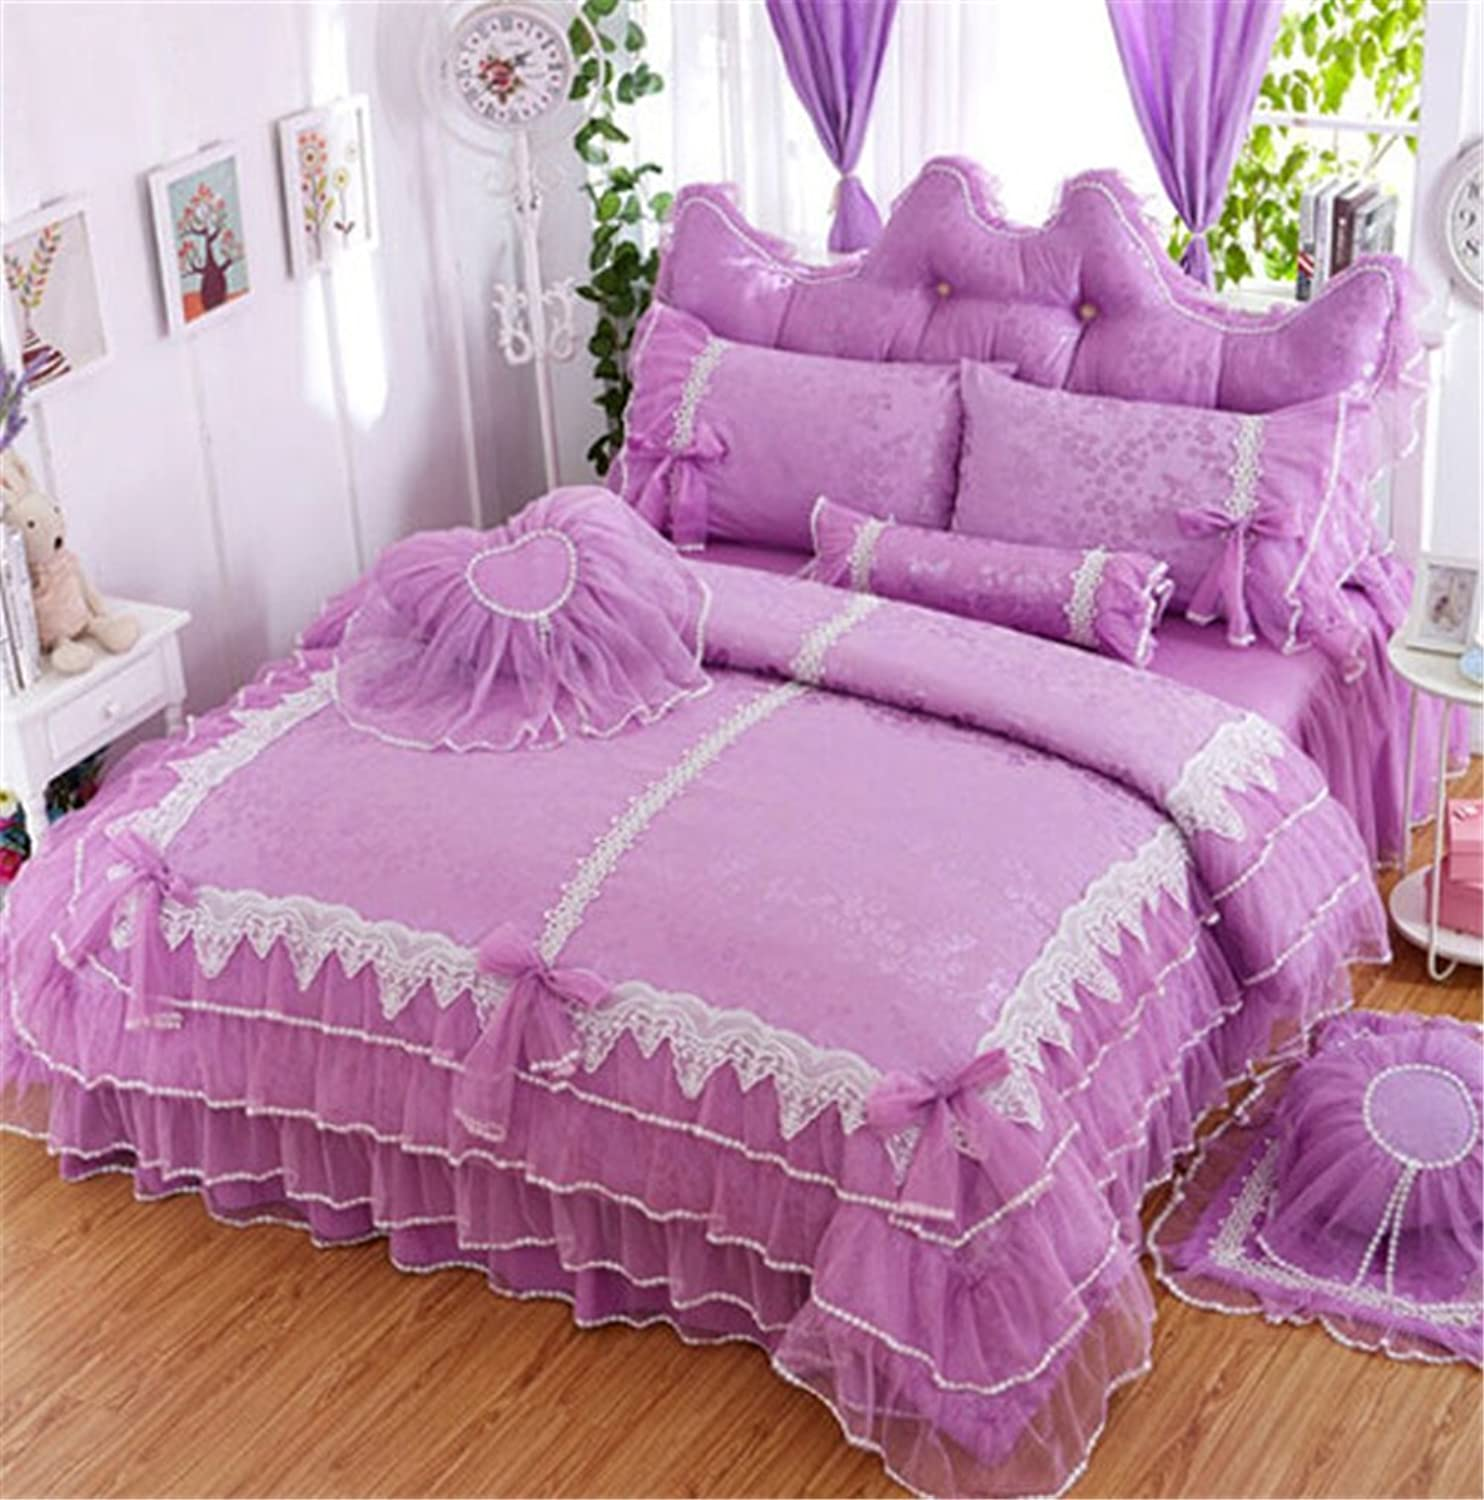 Lotus Karen Luxury Jacquard Lace Ruffles Korean Princess Girls Purple Bed Sheet Set 100% Cotton 4PC Wedding Bedding,1Duvet Cover,1Bedskirt,2Pillowcases King Queen Full Twin Size